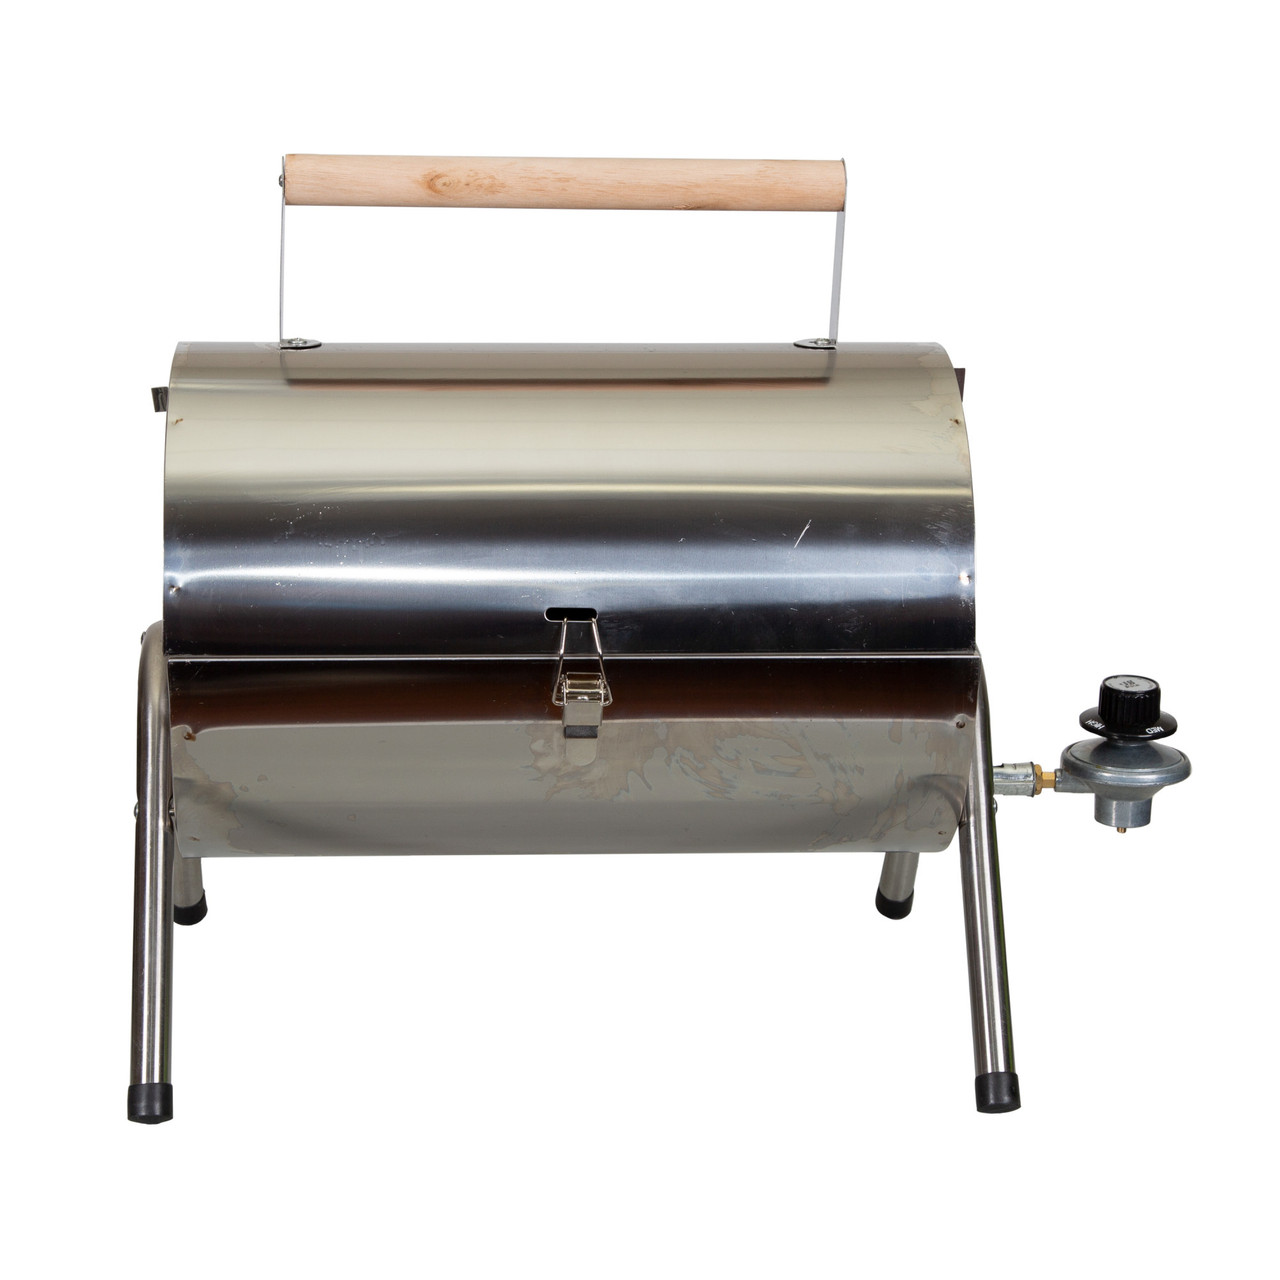 Details about  /Stansport STAINLESS STEEL PROPANE BBQ GRILL